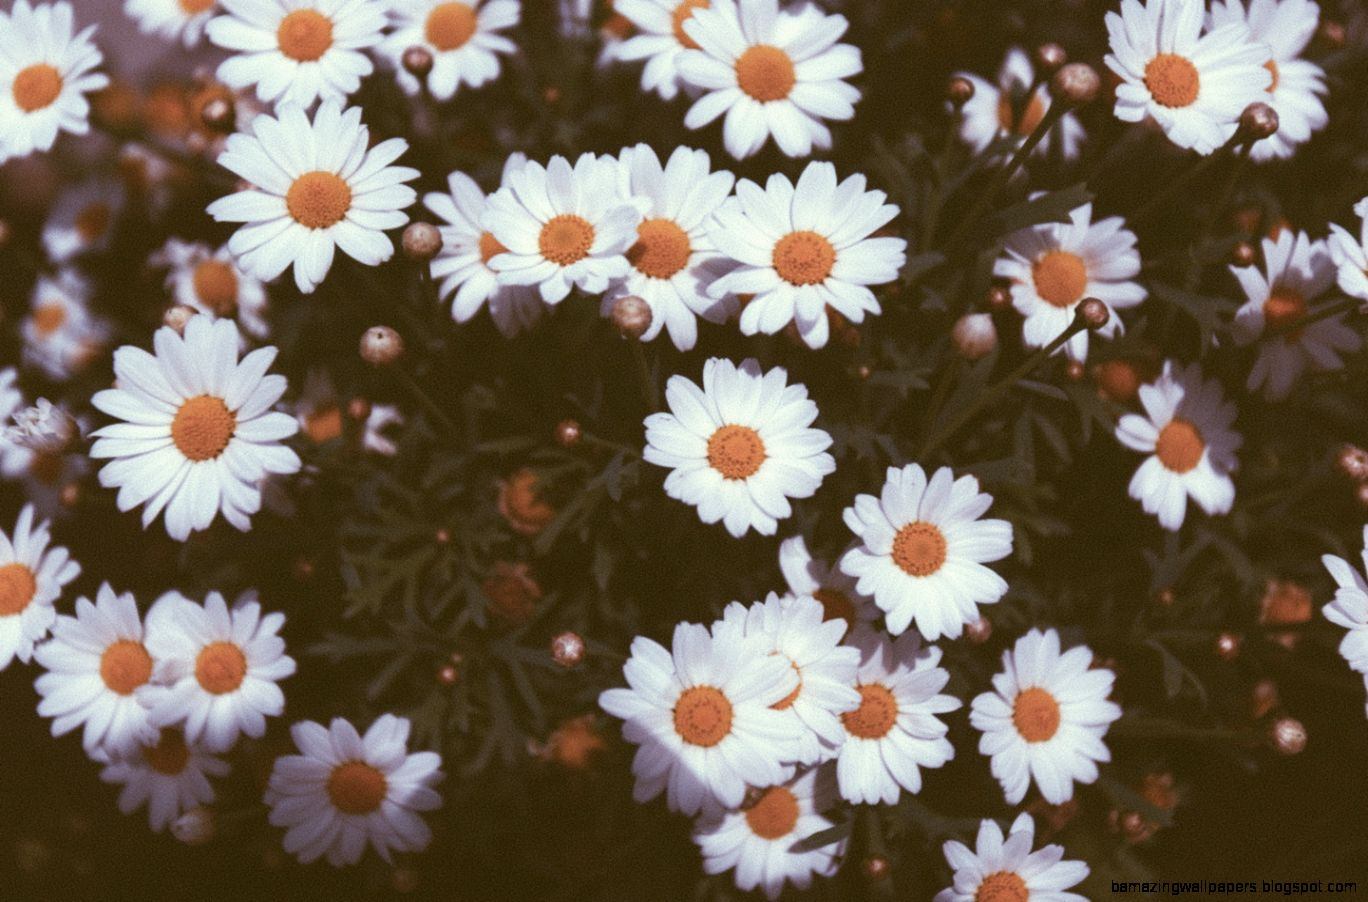 Daisy Tumblr Backgrounds Amazing Wallpapers